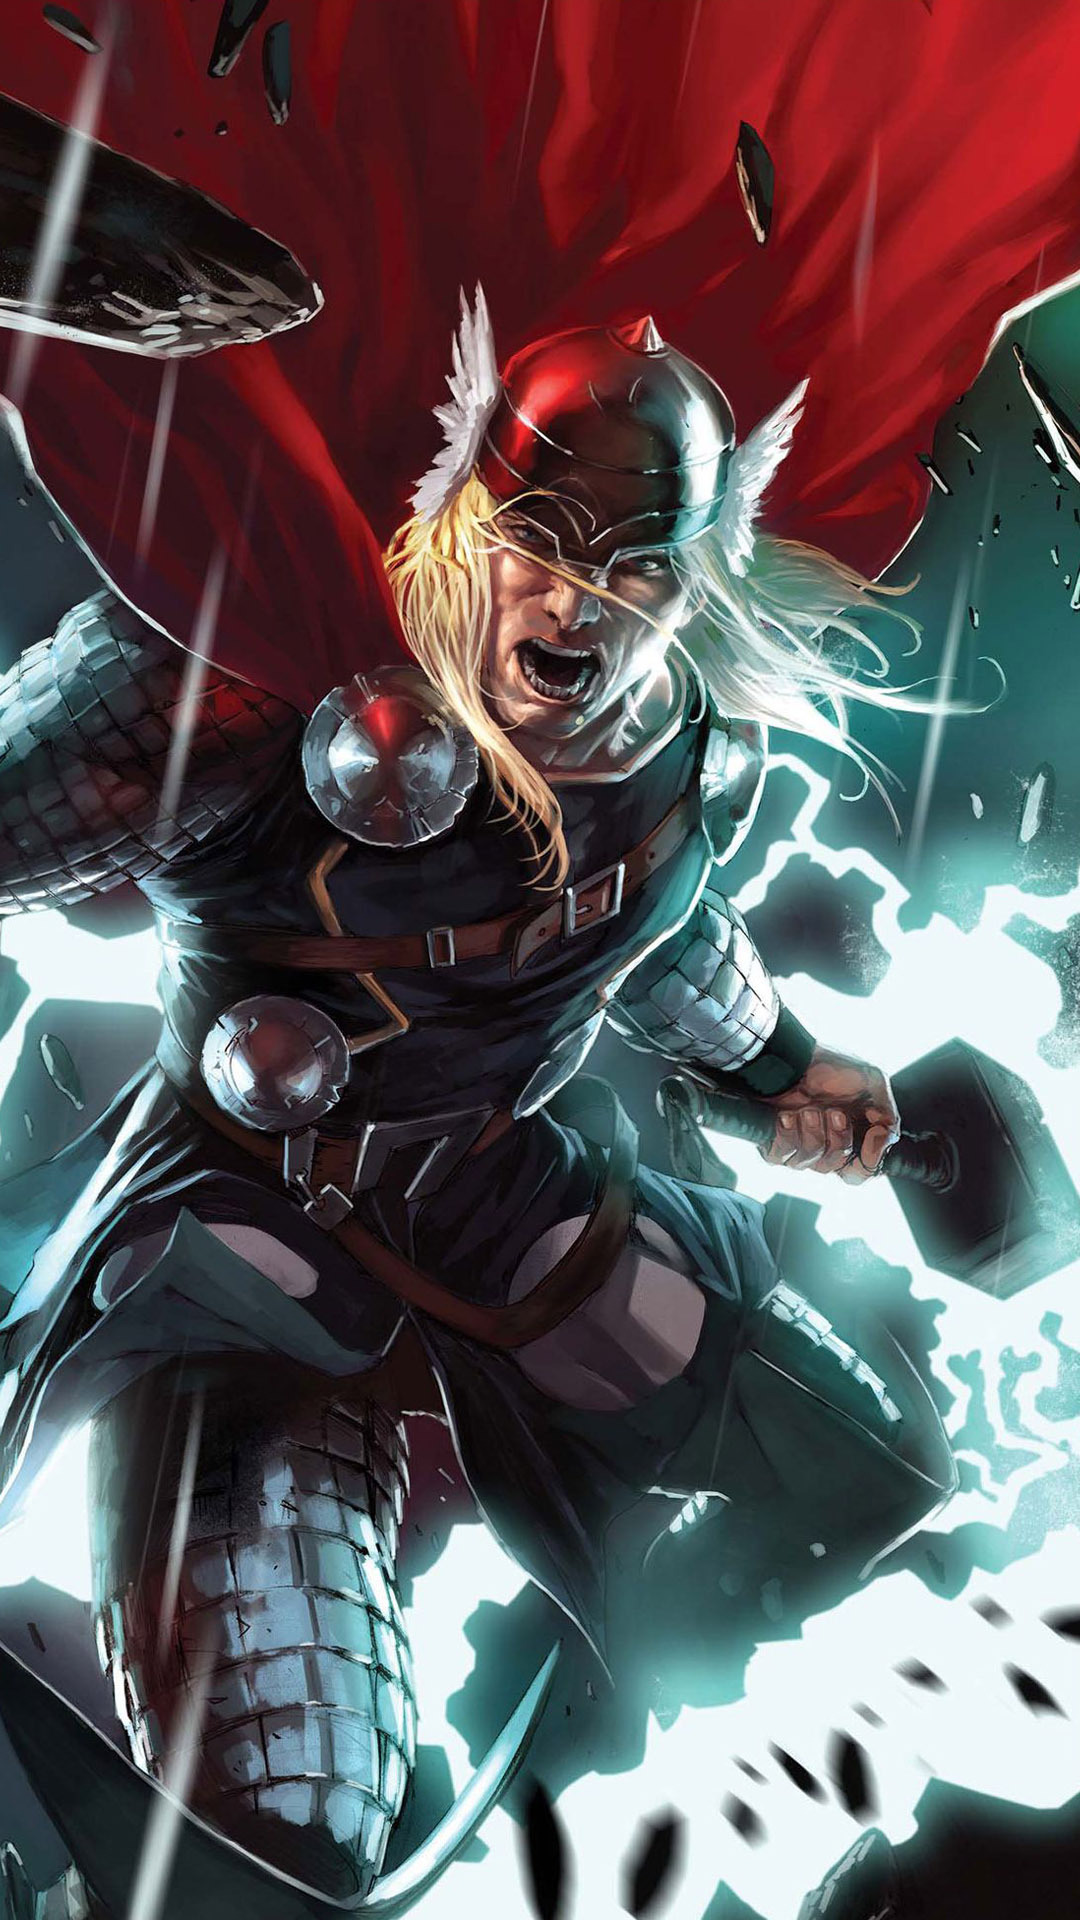 Iphone Home Screen Wallpaper Gallery Download Thor Iphone Wallpaper Gallery